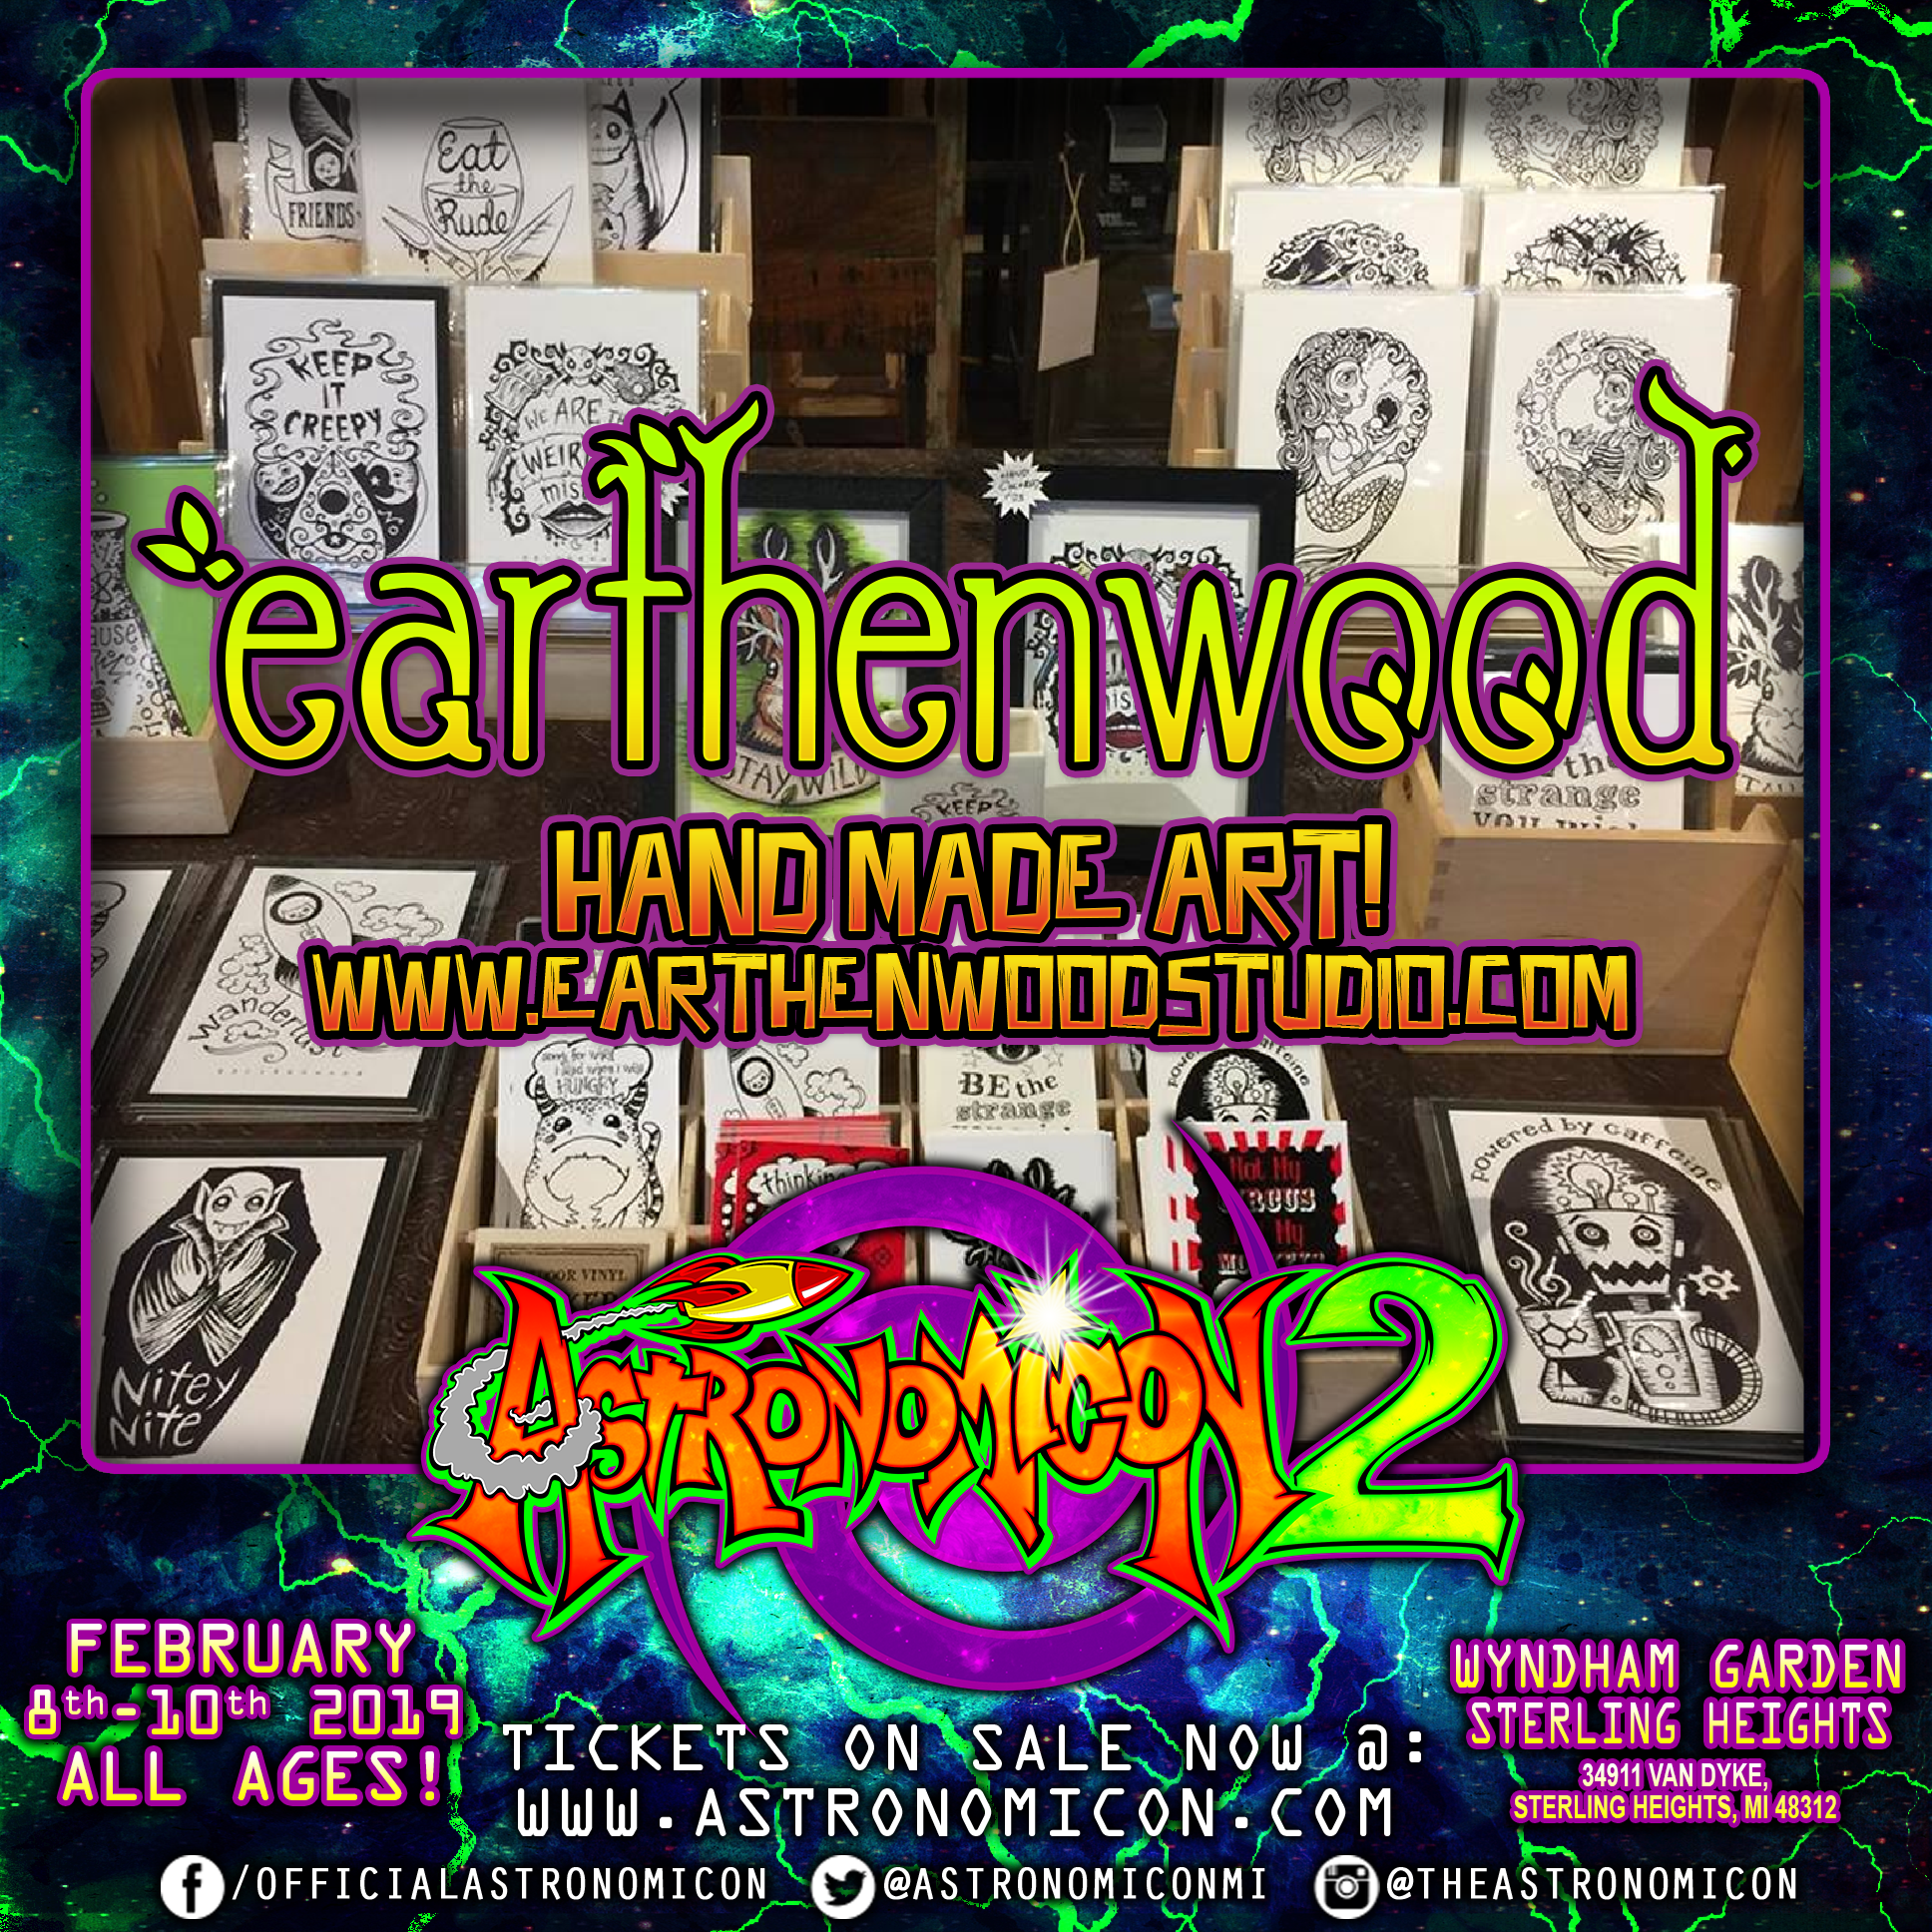 Astronomicon 2 Earthenwoon IG Ad.png